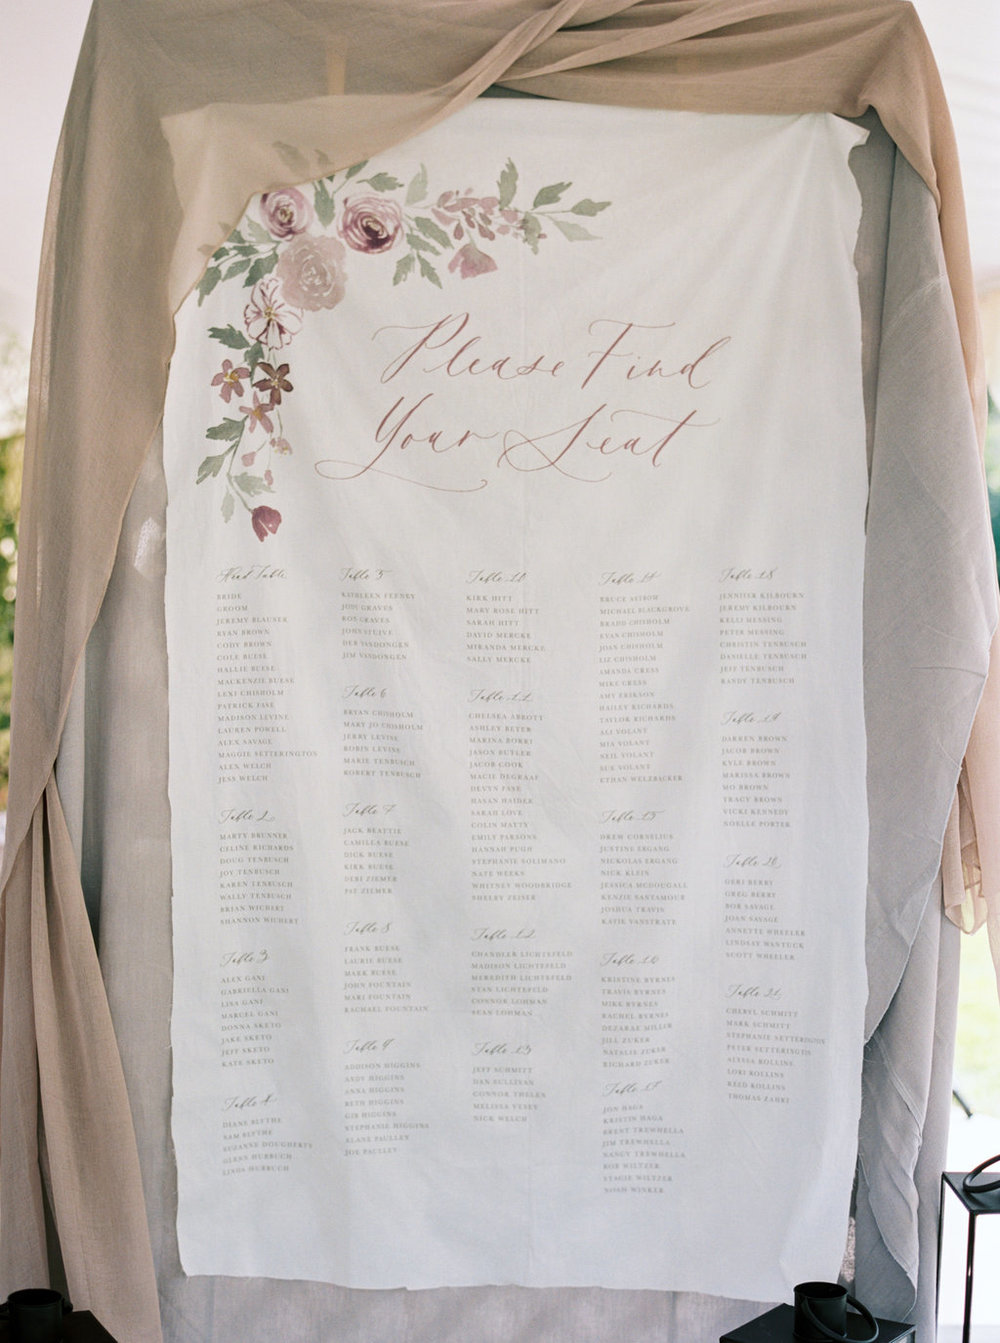 Creative wedding seating chart printed on fabric from Spoonflower.